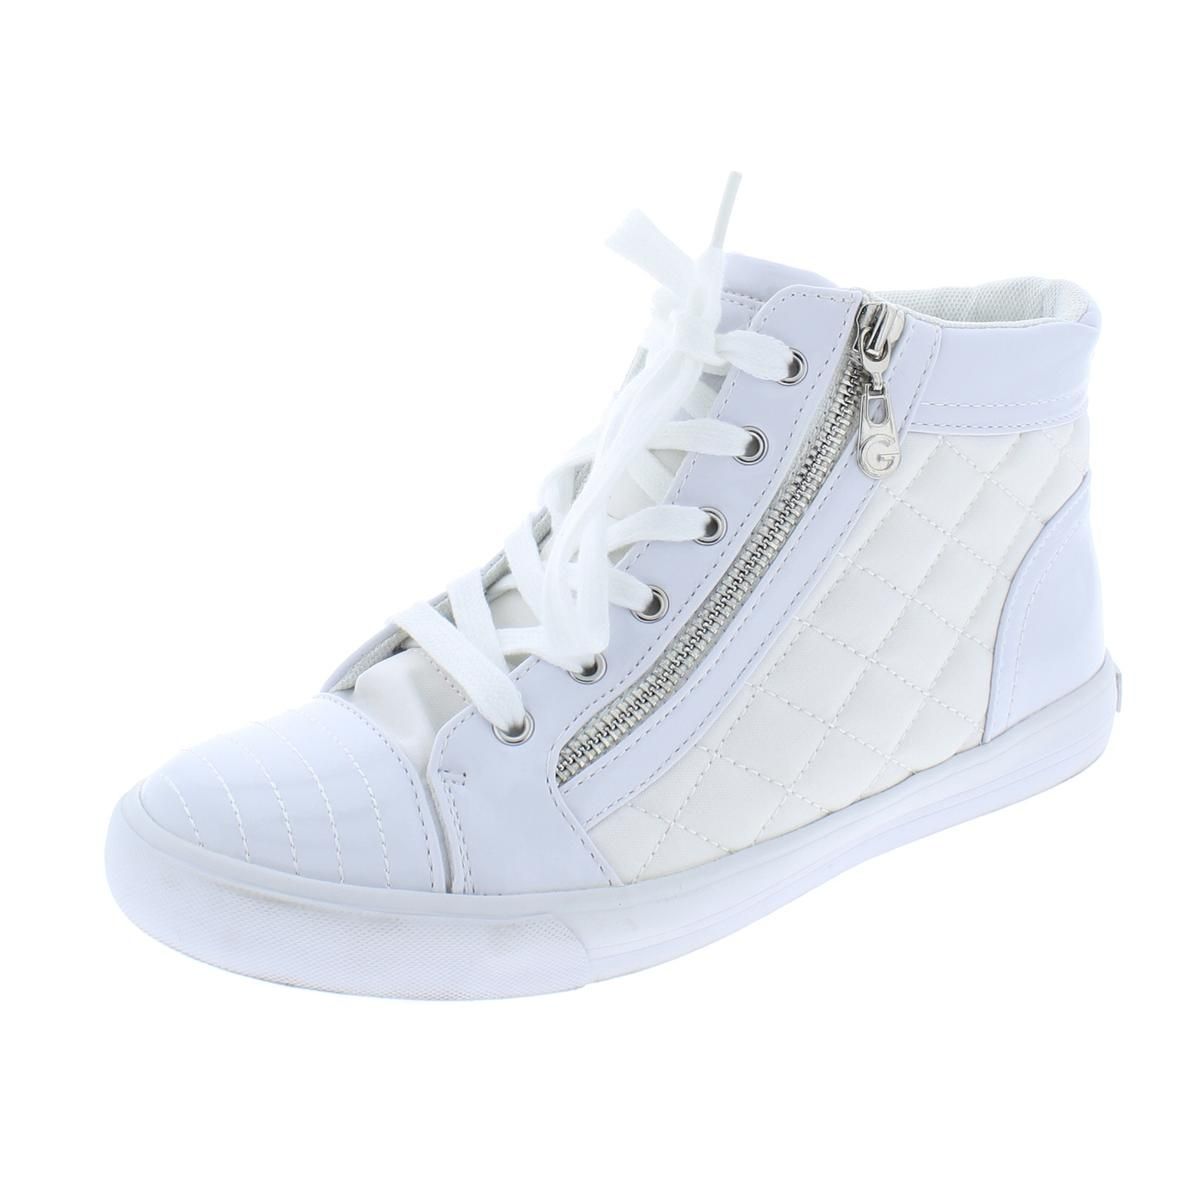 9716625e0e5 Details about G by Guess Womens Orily White Fashion Sneakers Shoes 8.5  Medium (B